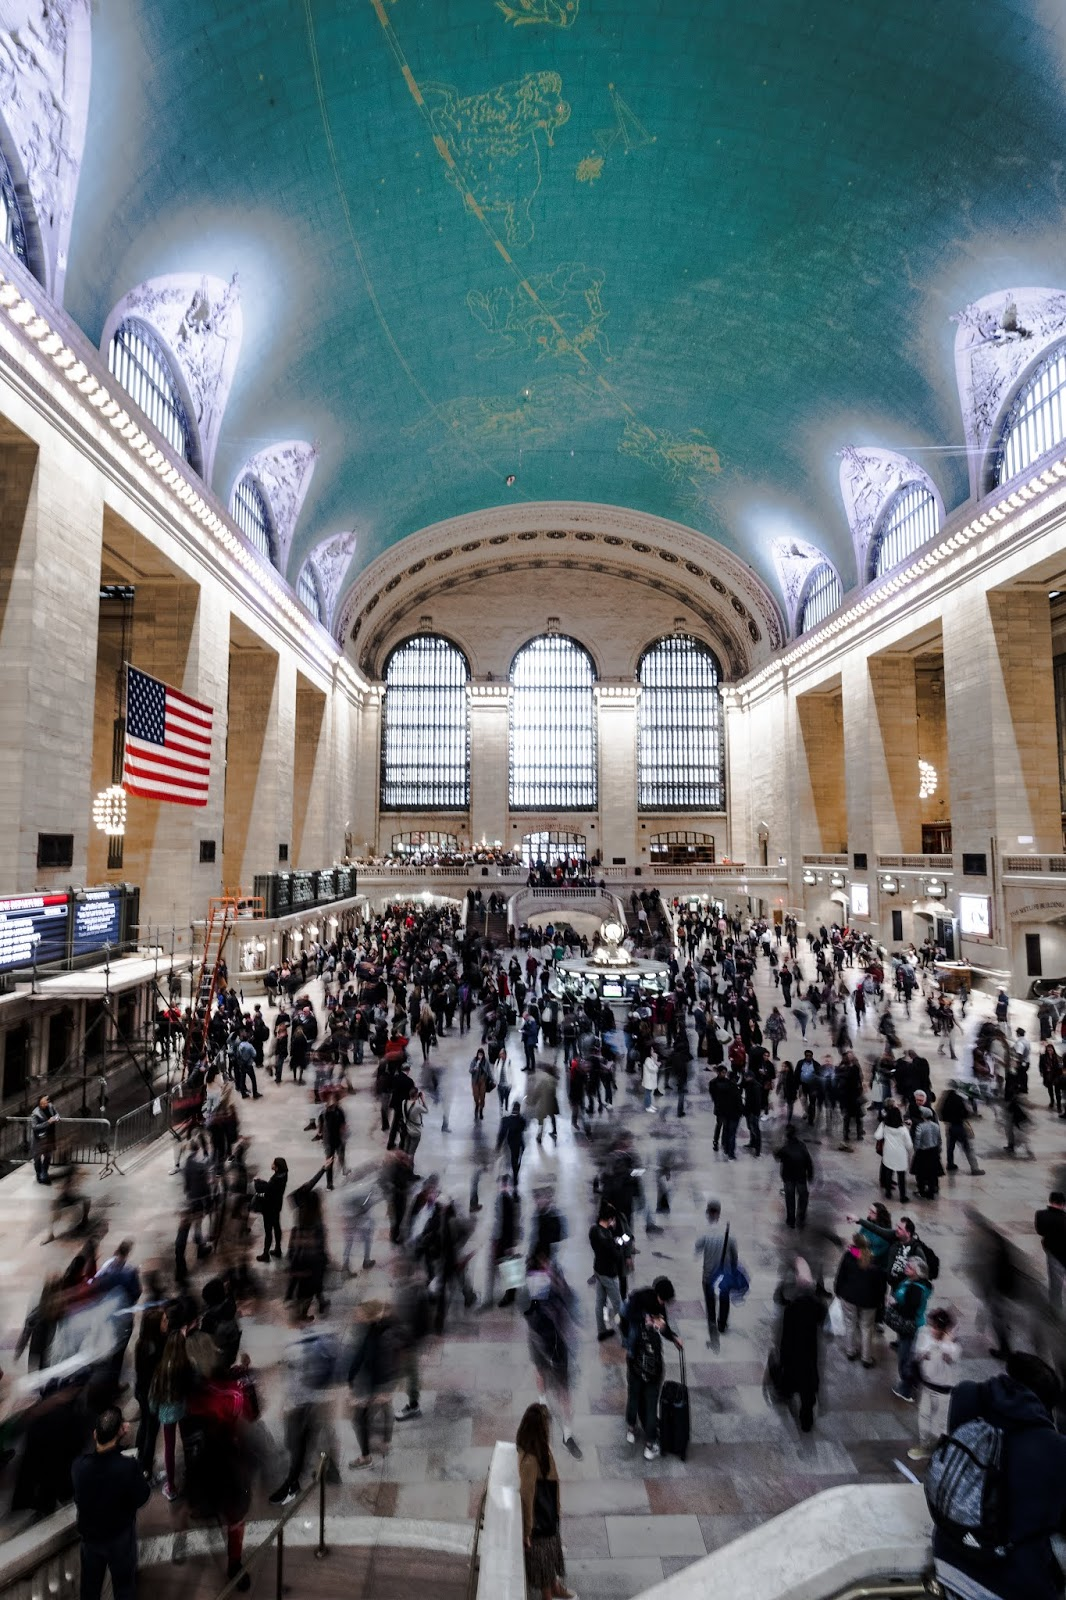 Grand central visite